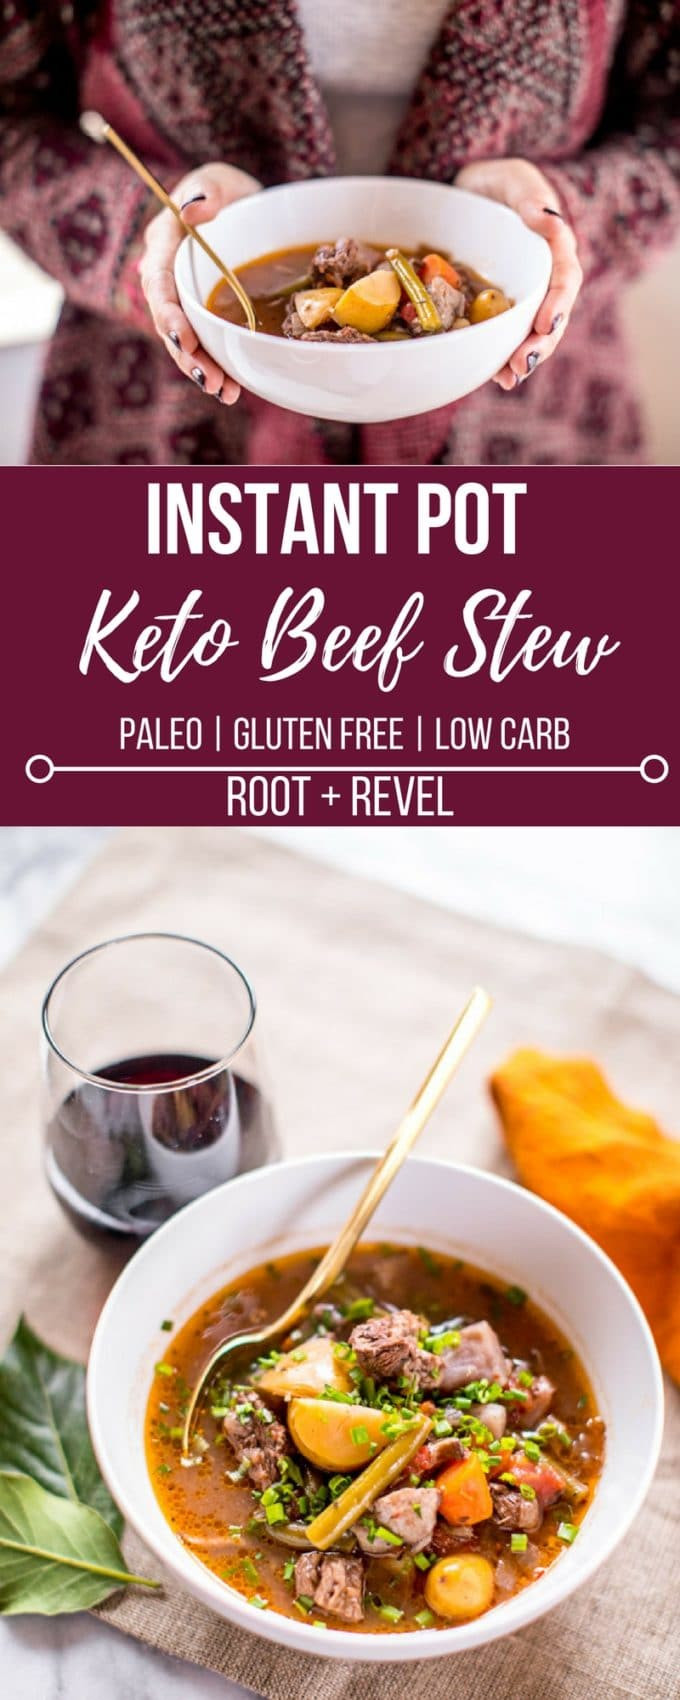 Instant Pot Beef Keto  Keto Beef Stew in the Instant Pot or Slow Cooker